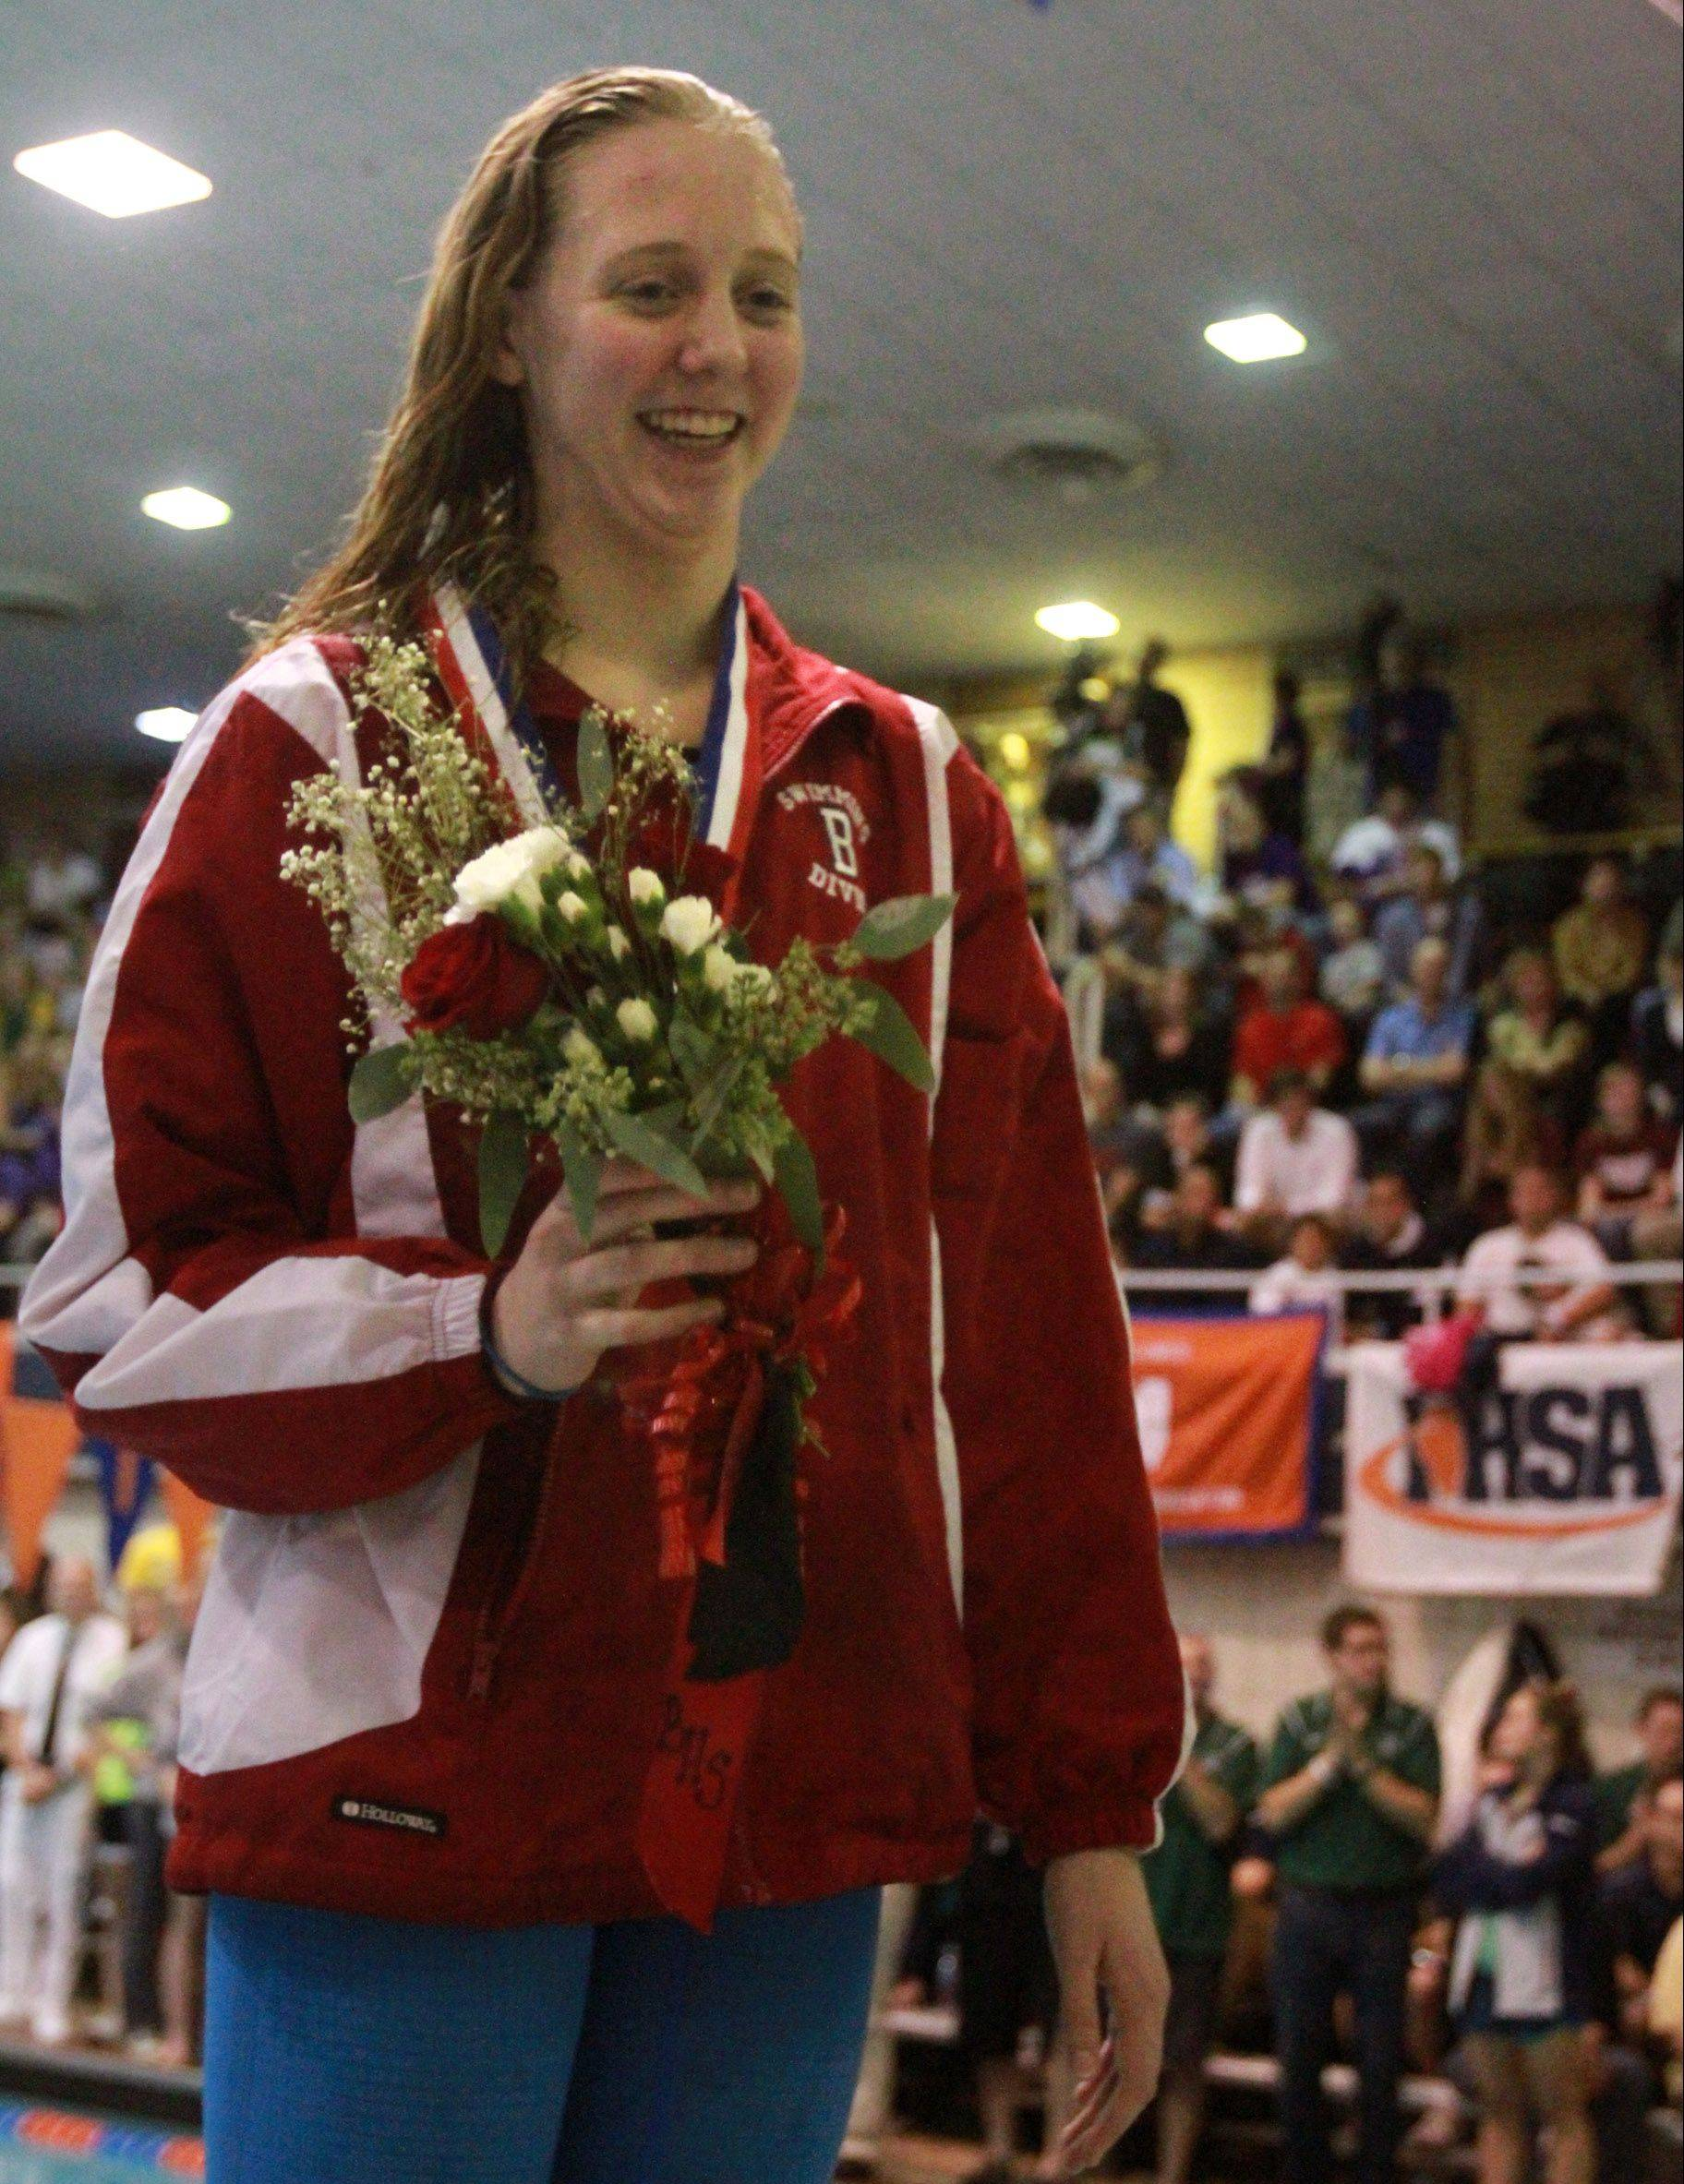 Barrington freshman Kirsten Jacobsen captured the state crown in the grueling 500-yard freestyle and placed third in the 200 freestyle at the IHSA state championships in Evanston on Saturday.